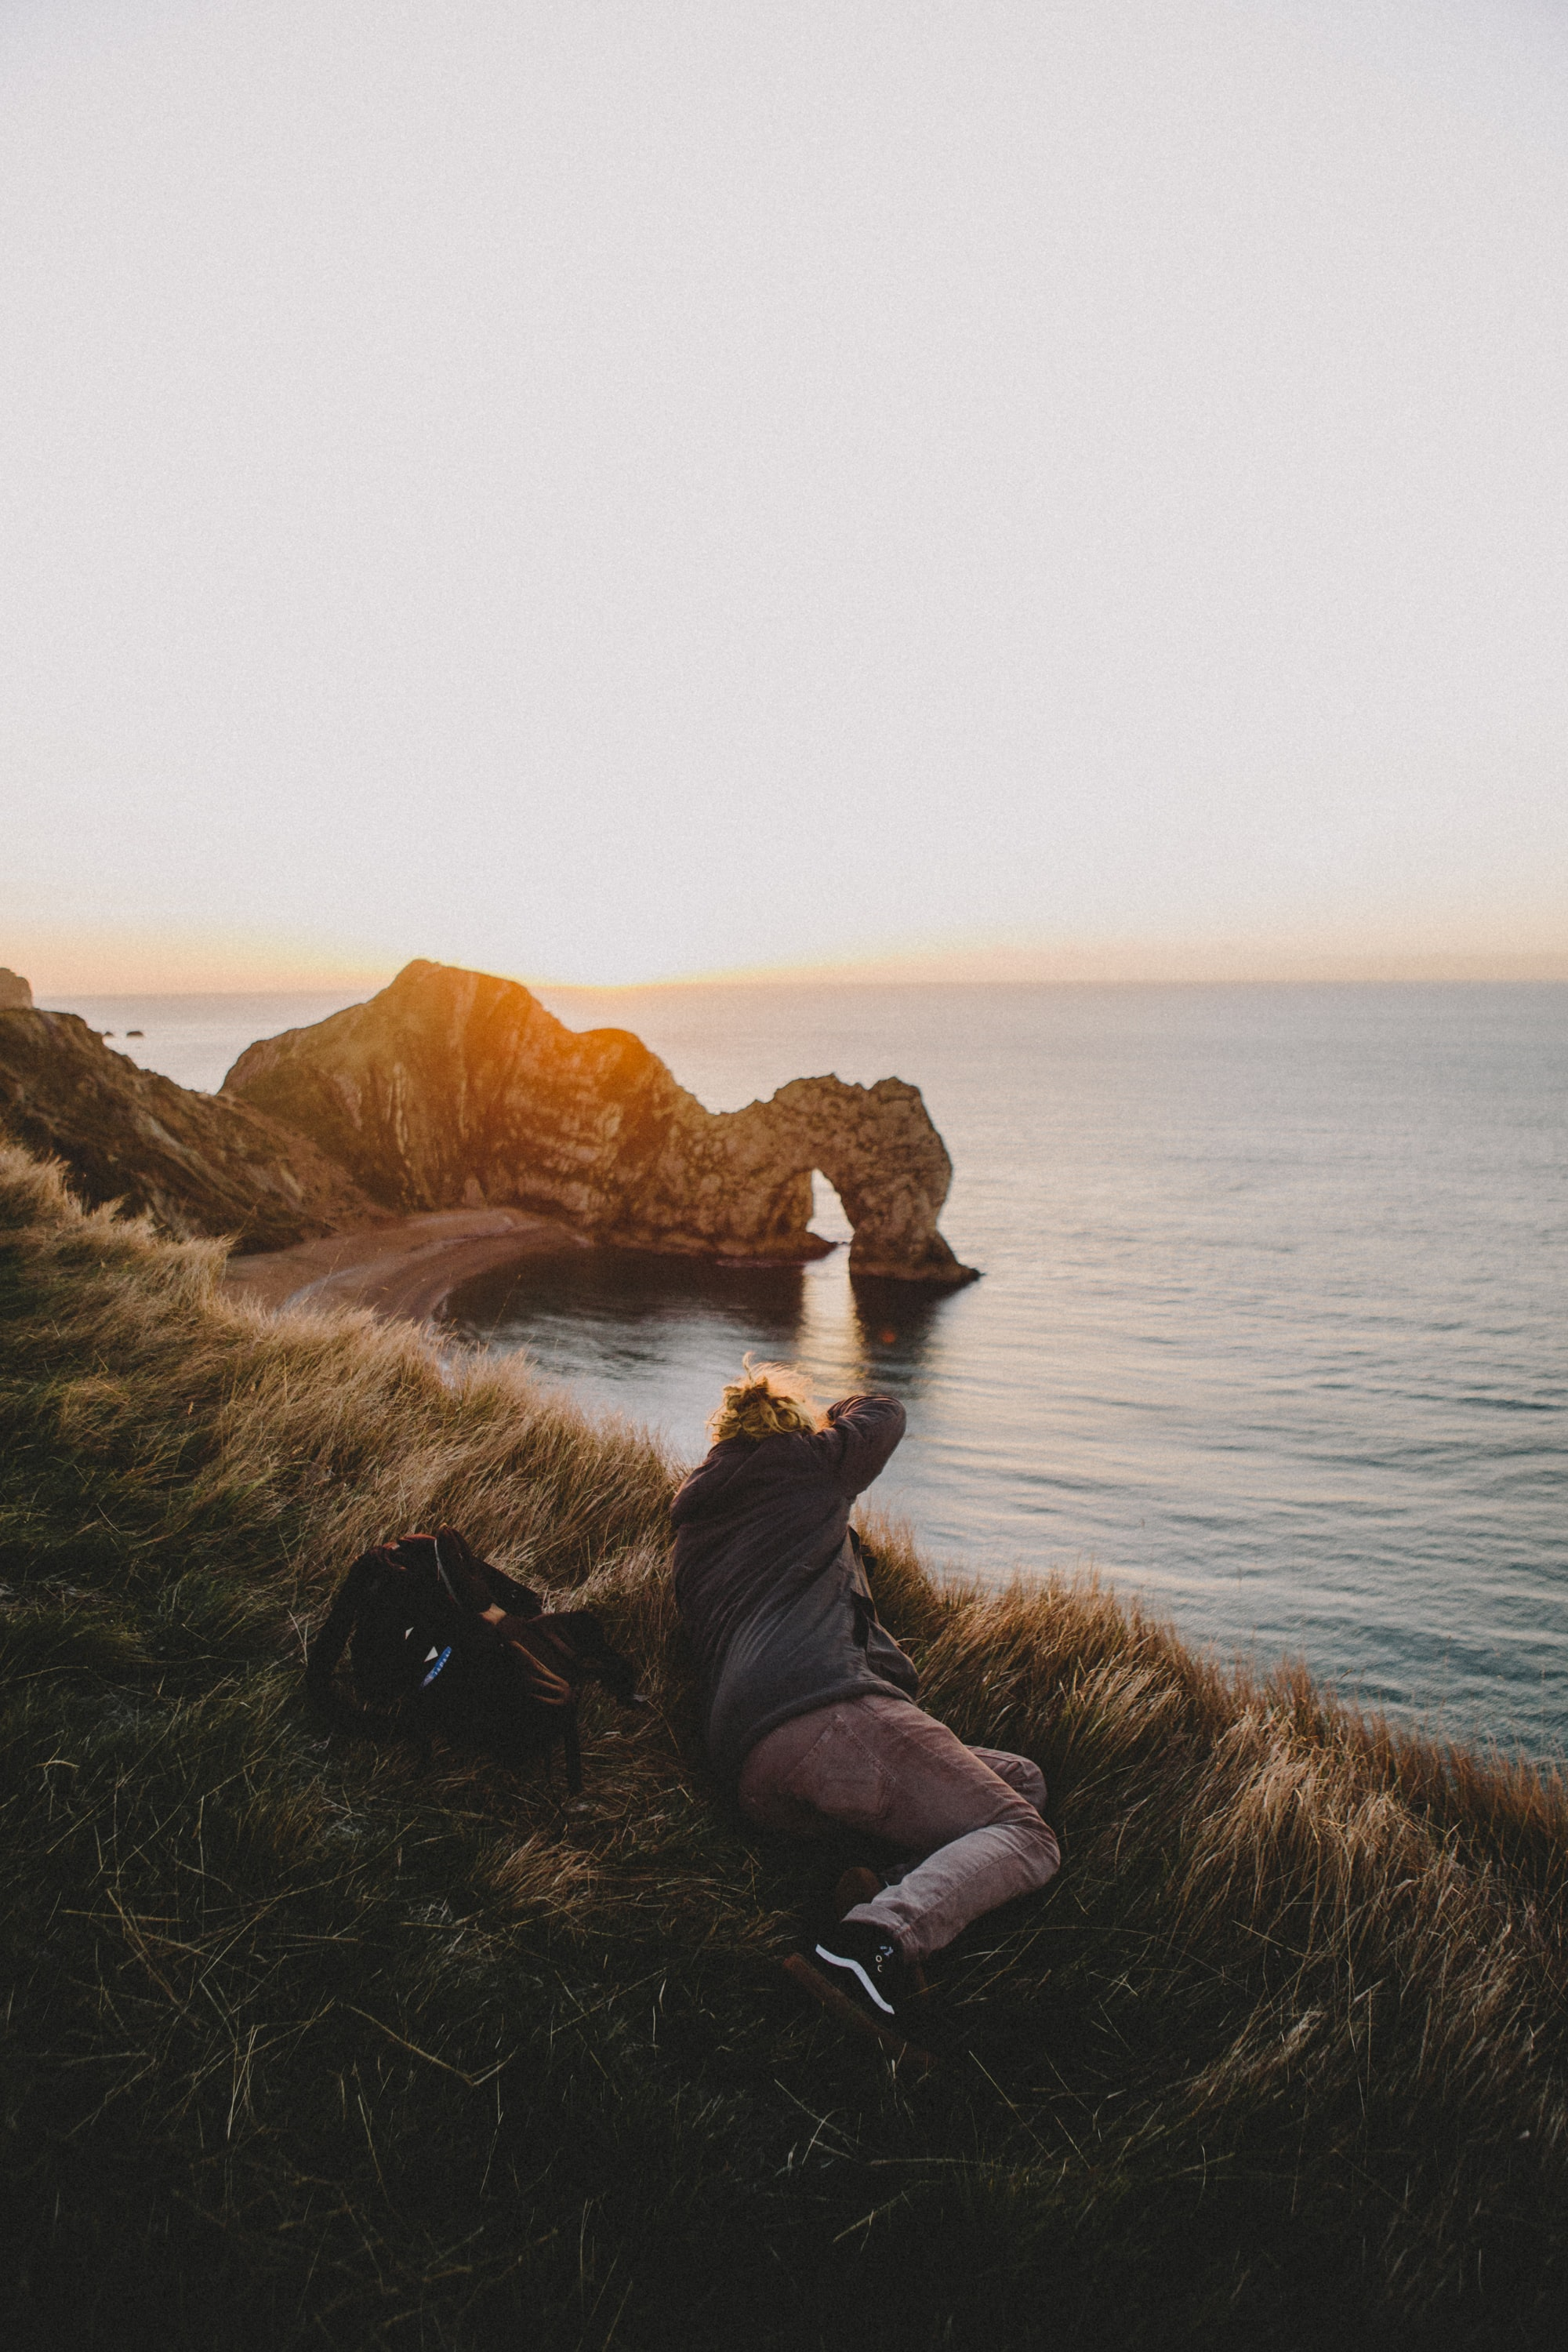 Photographer lying on the grass capturing the Durdle door arch on the cove during golden hour